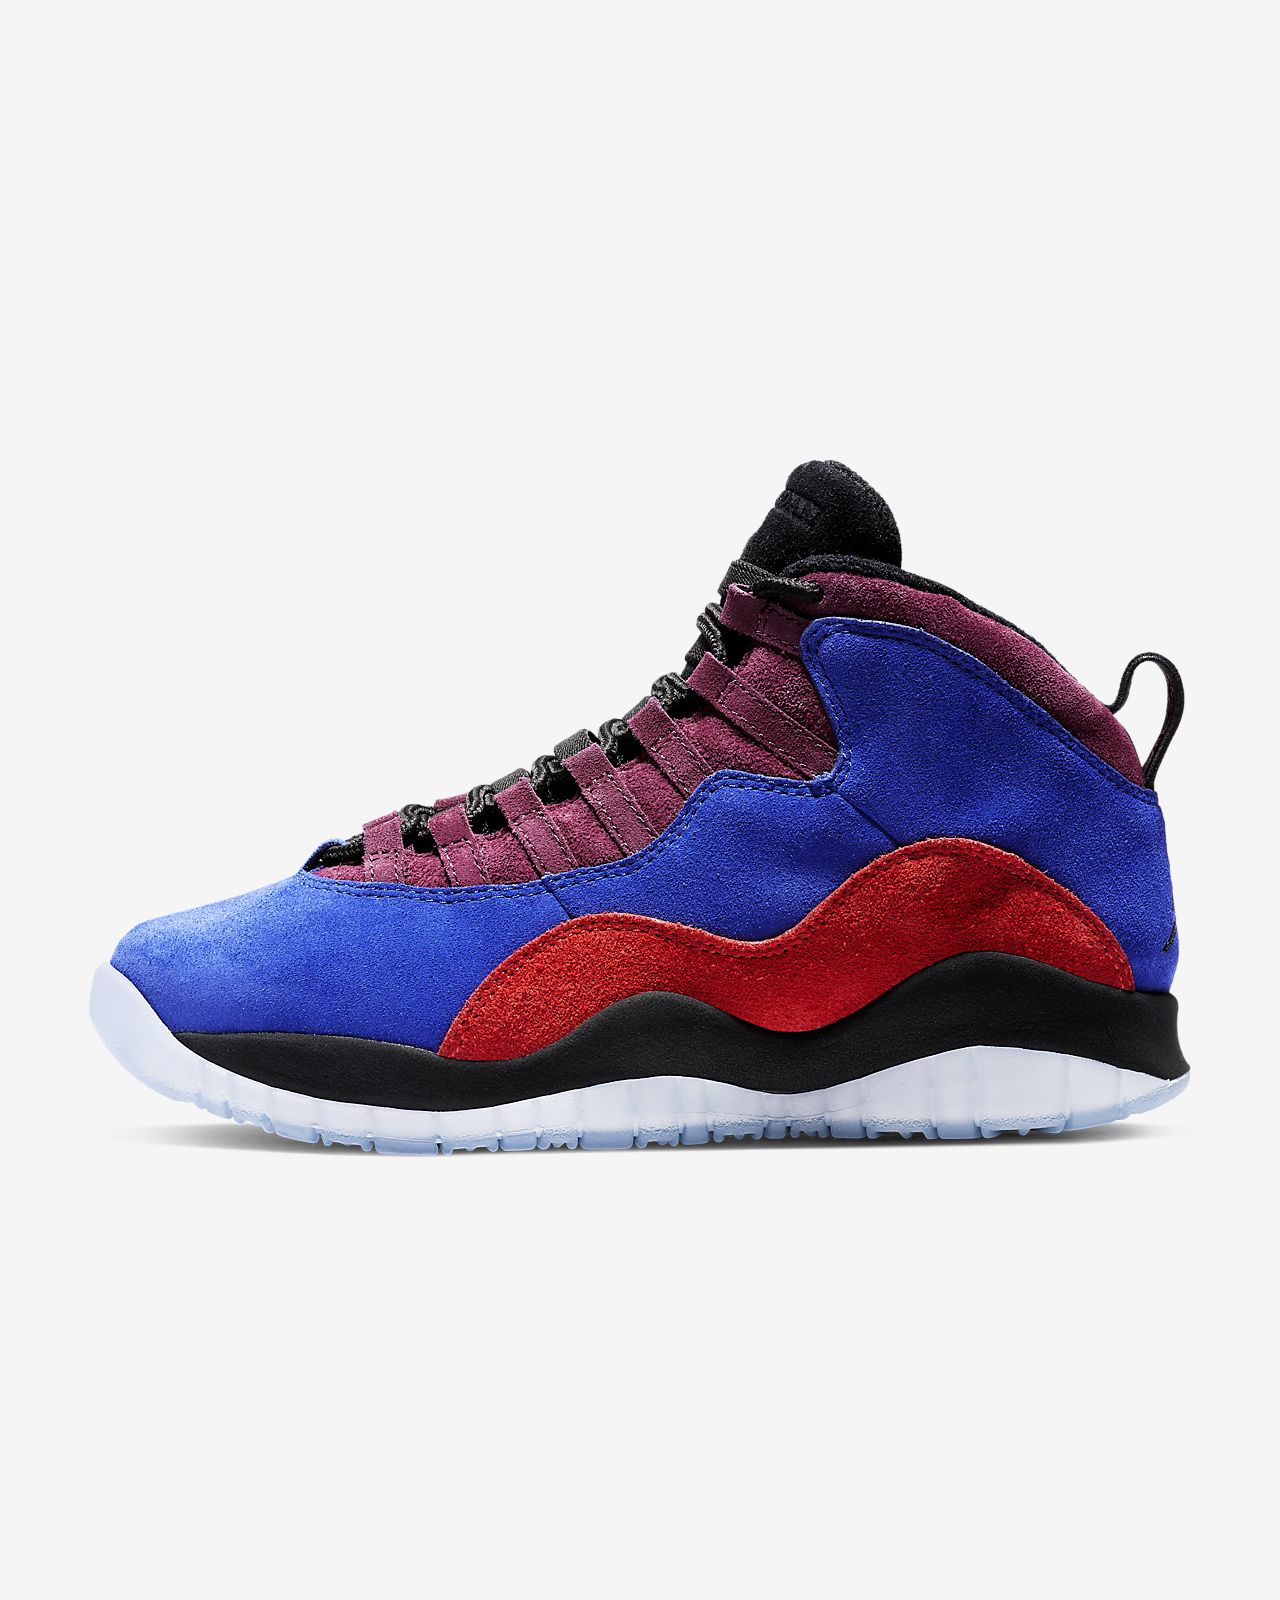 1e1e482336 Air Jordan 10 Retro Women's Shoe